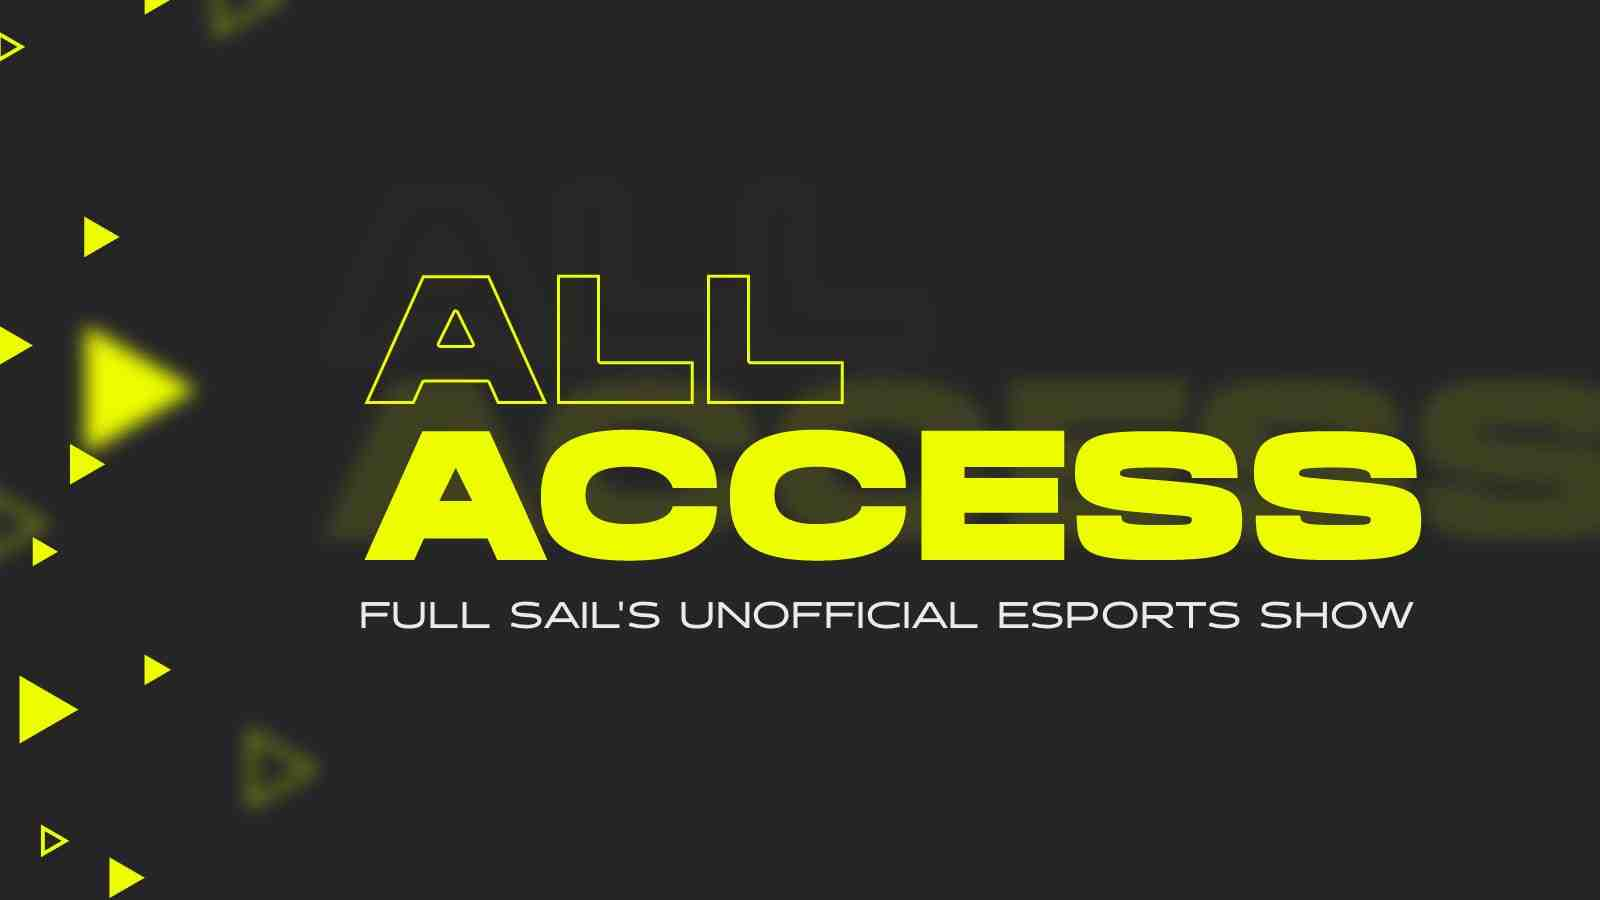 Full Sail Armada Launches 'All Access' Twitch Series - Article image